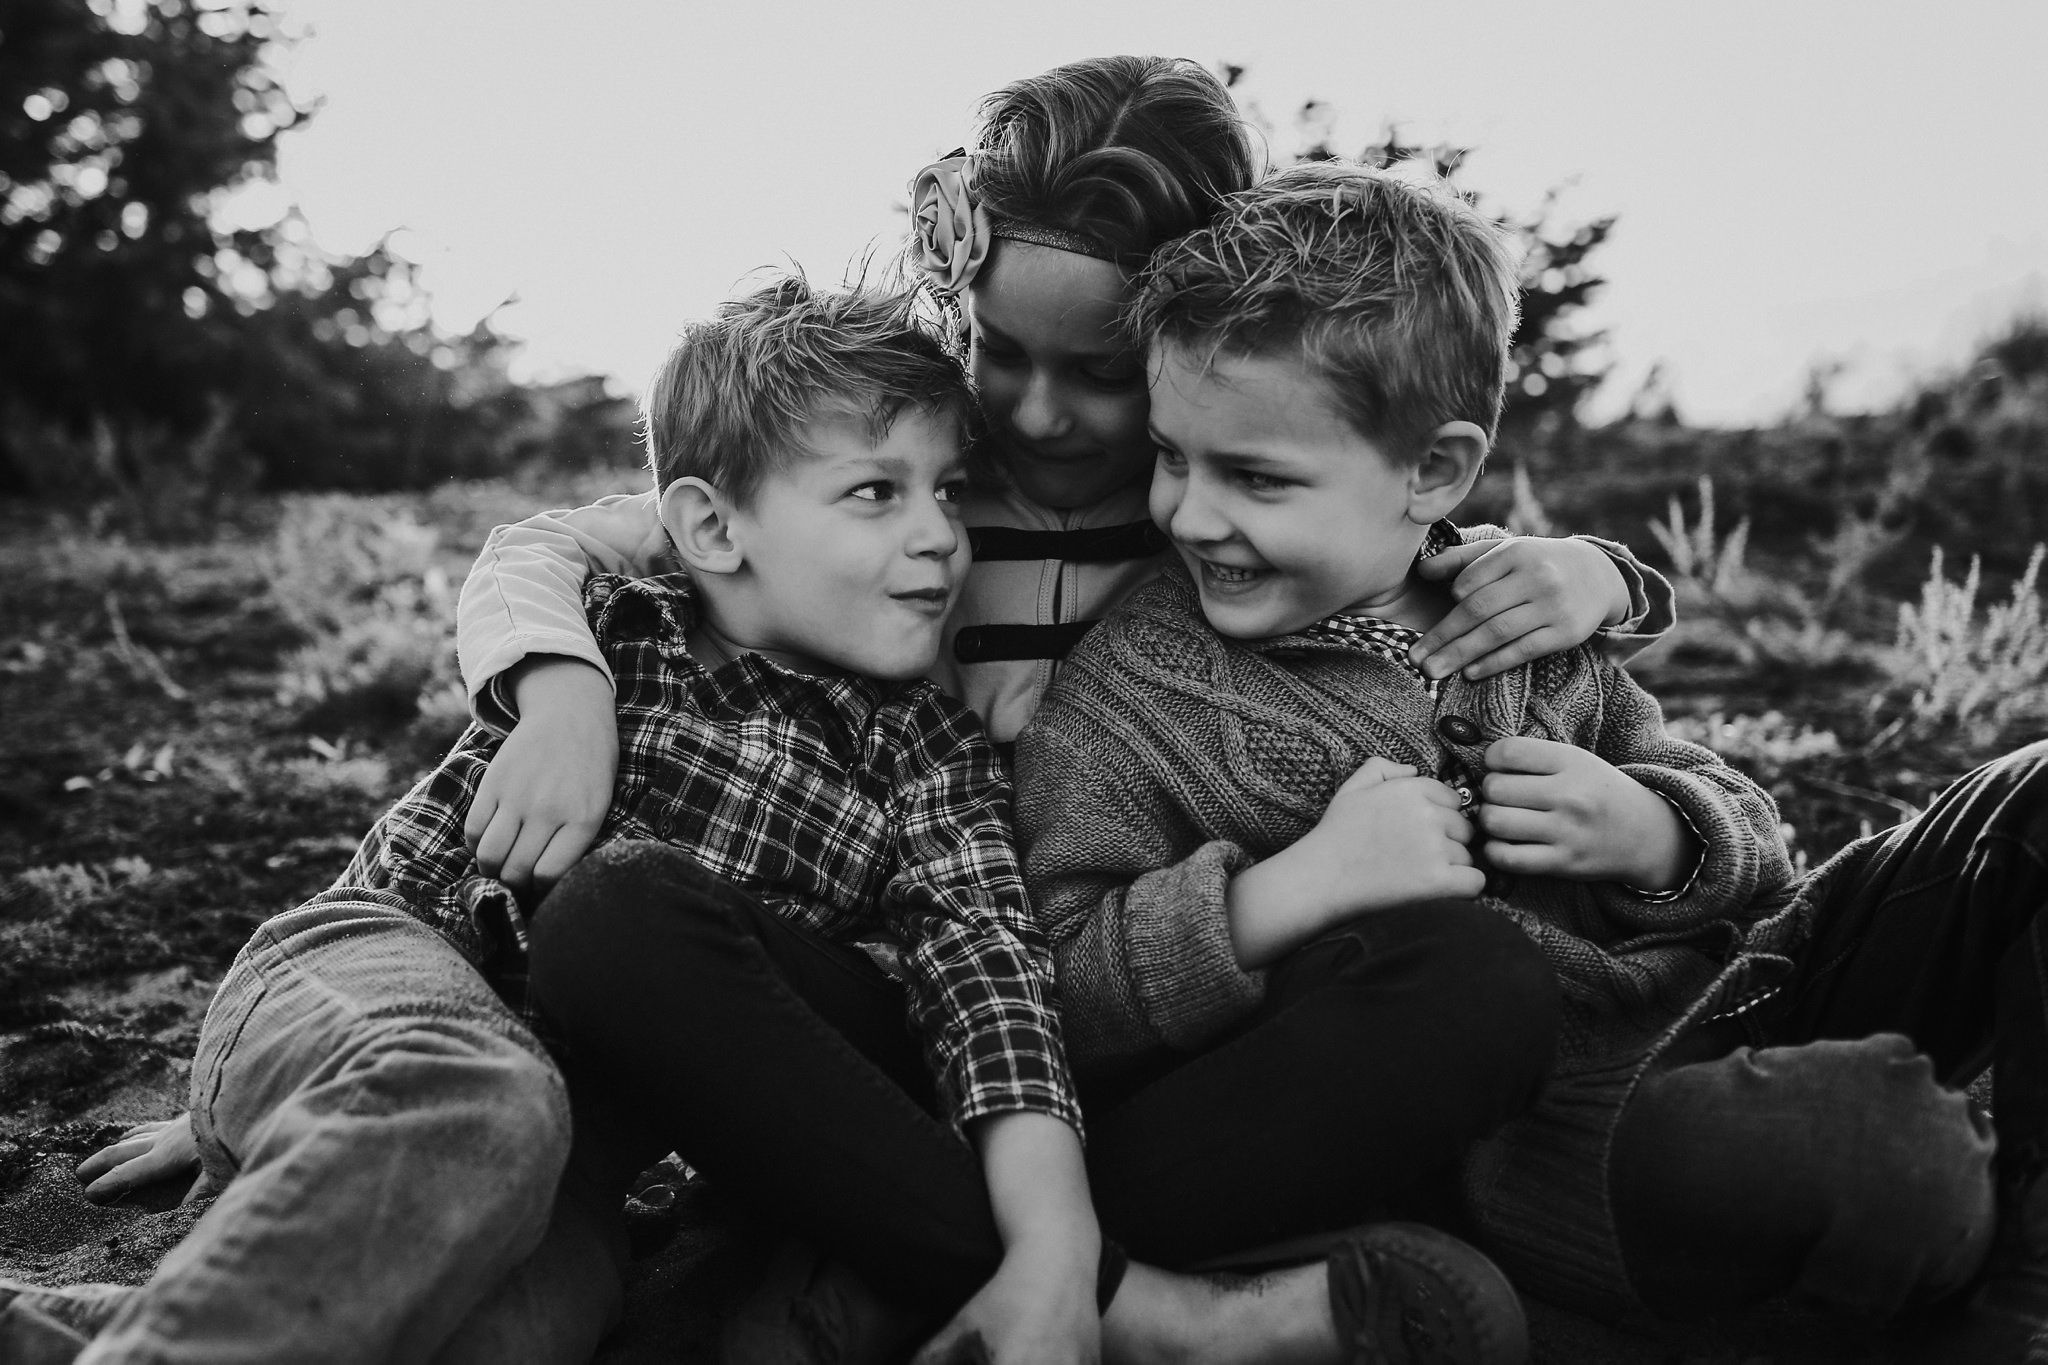 Whidbey-Island-Family-Photographer-Kara-Chappell-Photography_1187.jpg